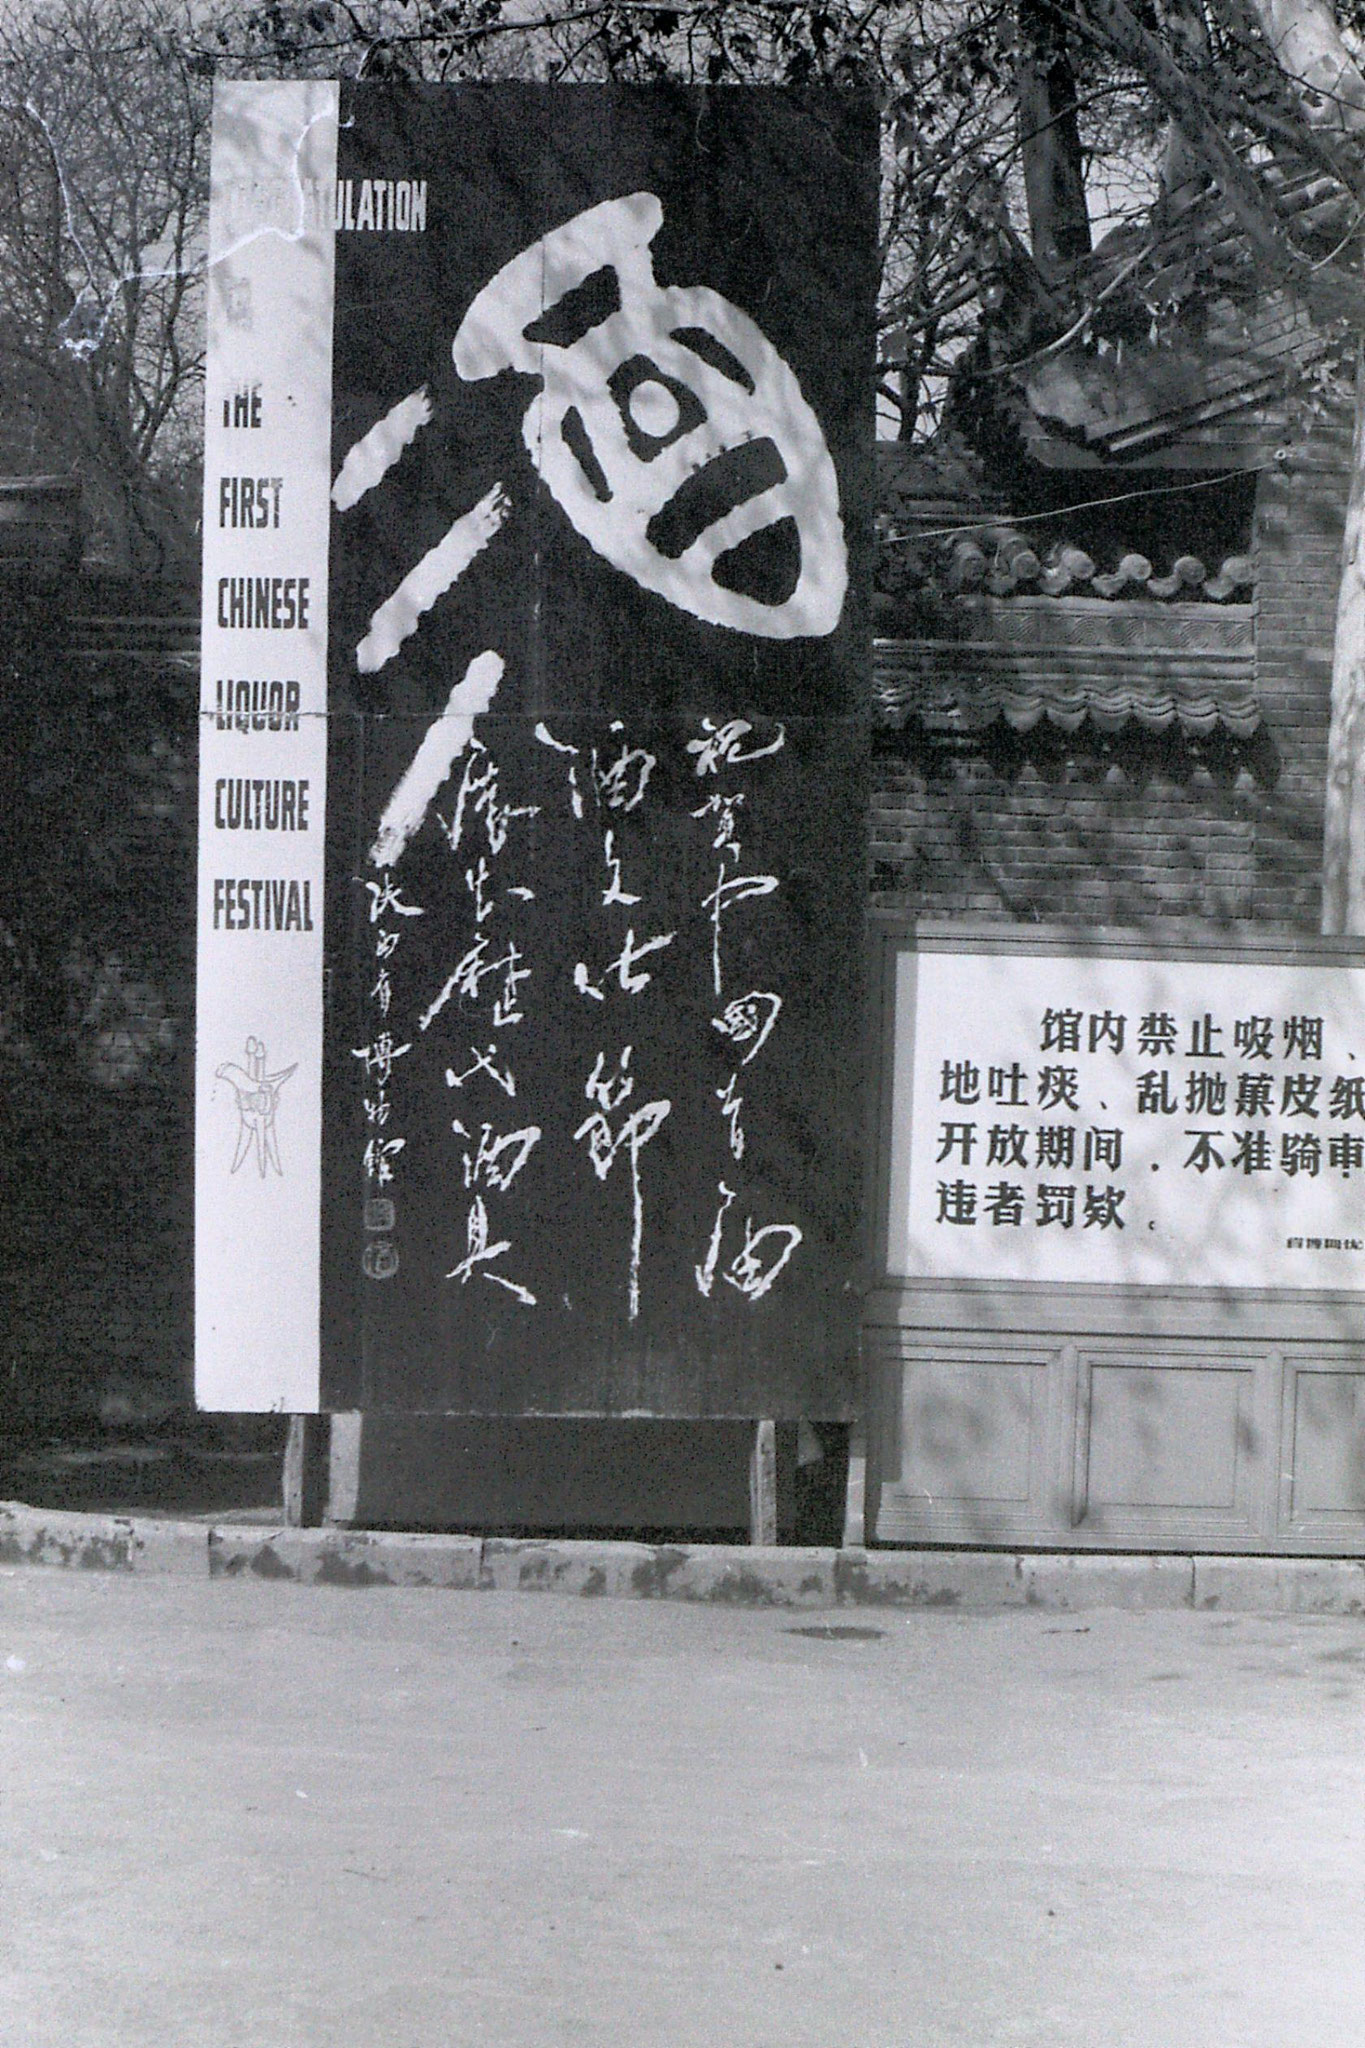 5/3/1989: 20: Xi'an sign